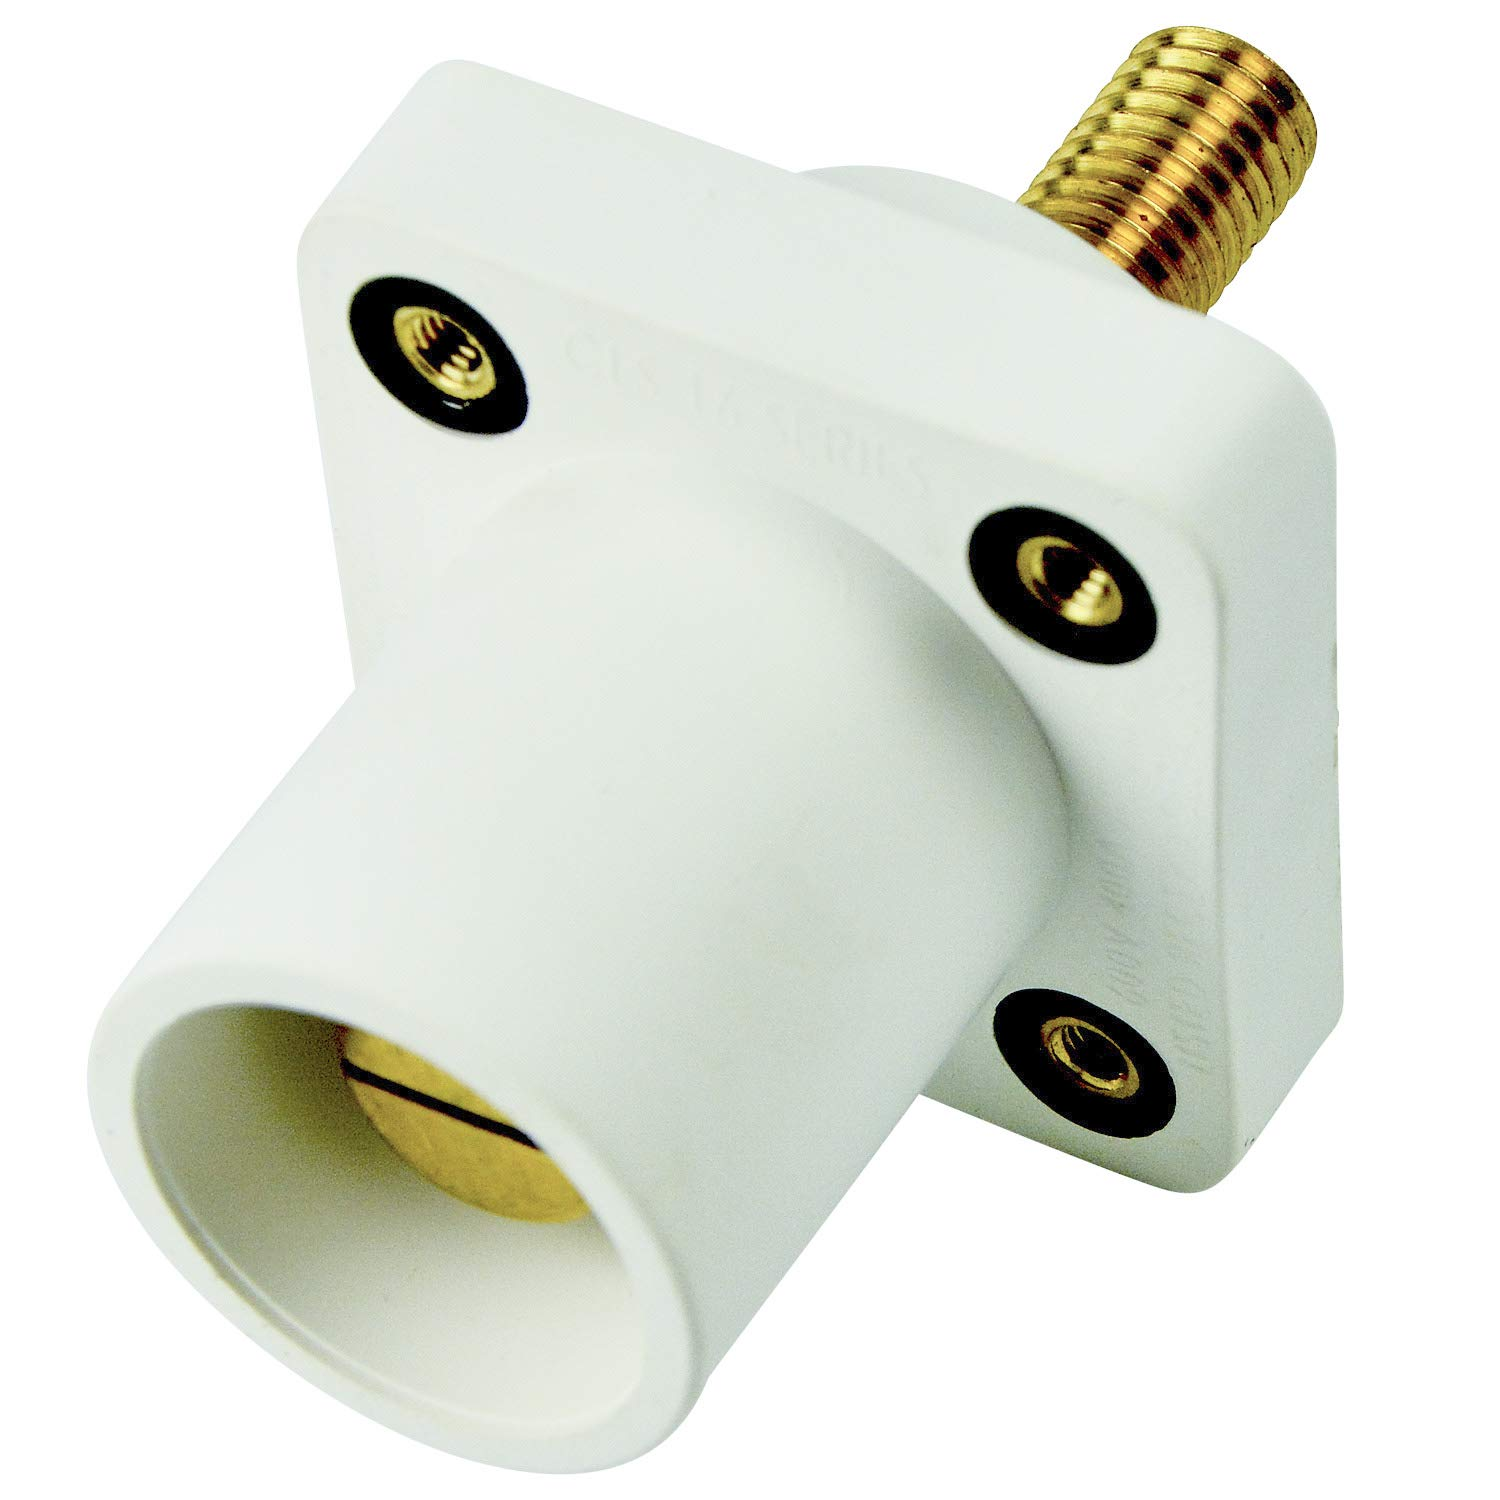 Marinco Power Products CLS40MRSB-B CLS Seasonal Wrap Introduction 16 Price reduction 40 Mount Panel Series